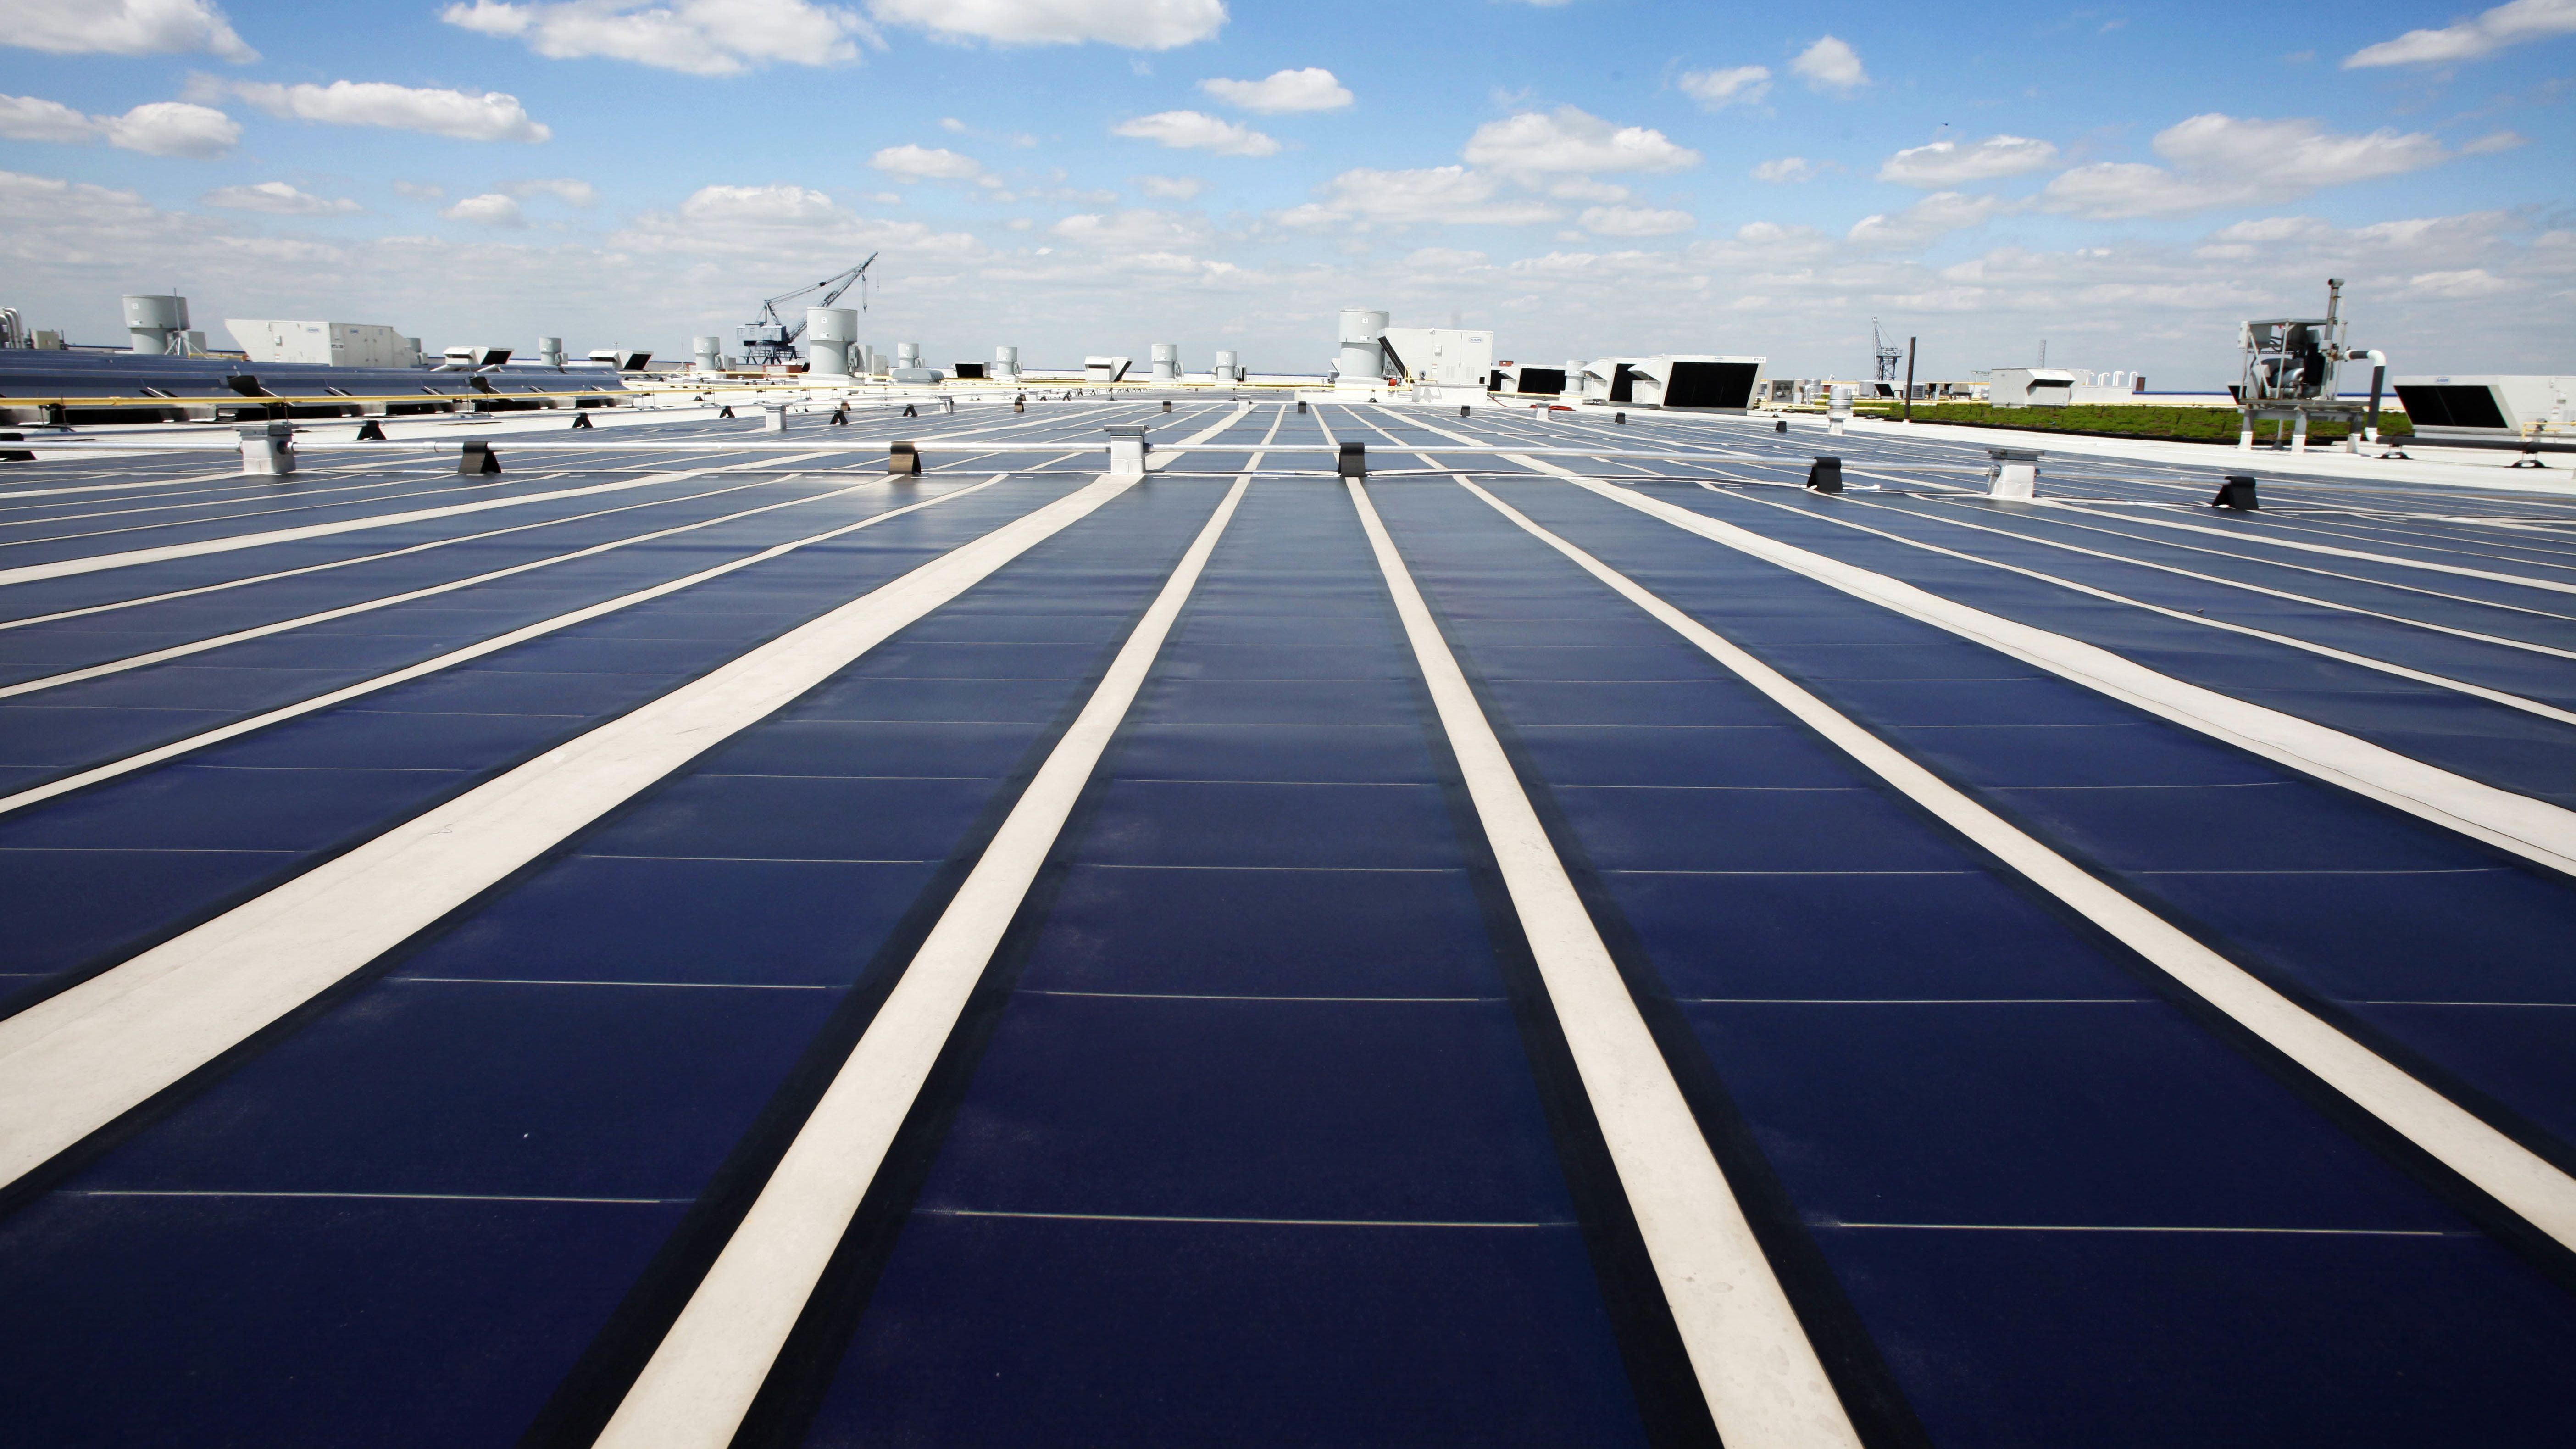 Solar panels line the roof of Ikea's Brooklyn store, Friday, April 29, 2011 in New York. The 19,000-square feet of panels will generate 240,000 kWh of electricity for the store. (AP Photo/Mark Lennihan)